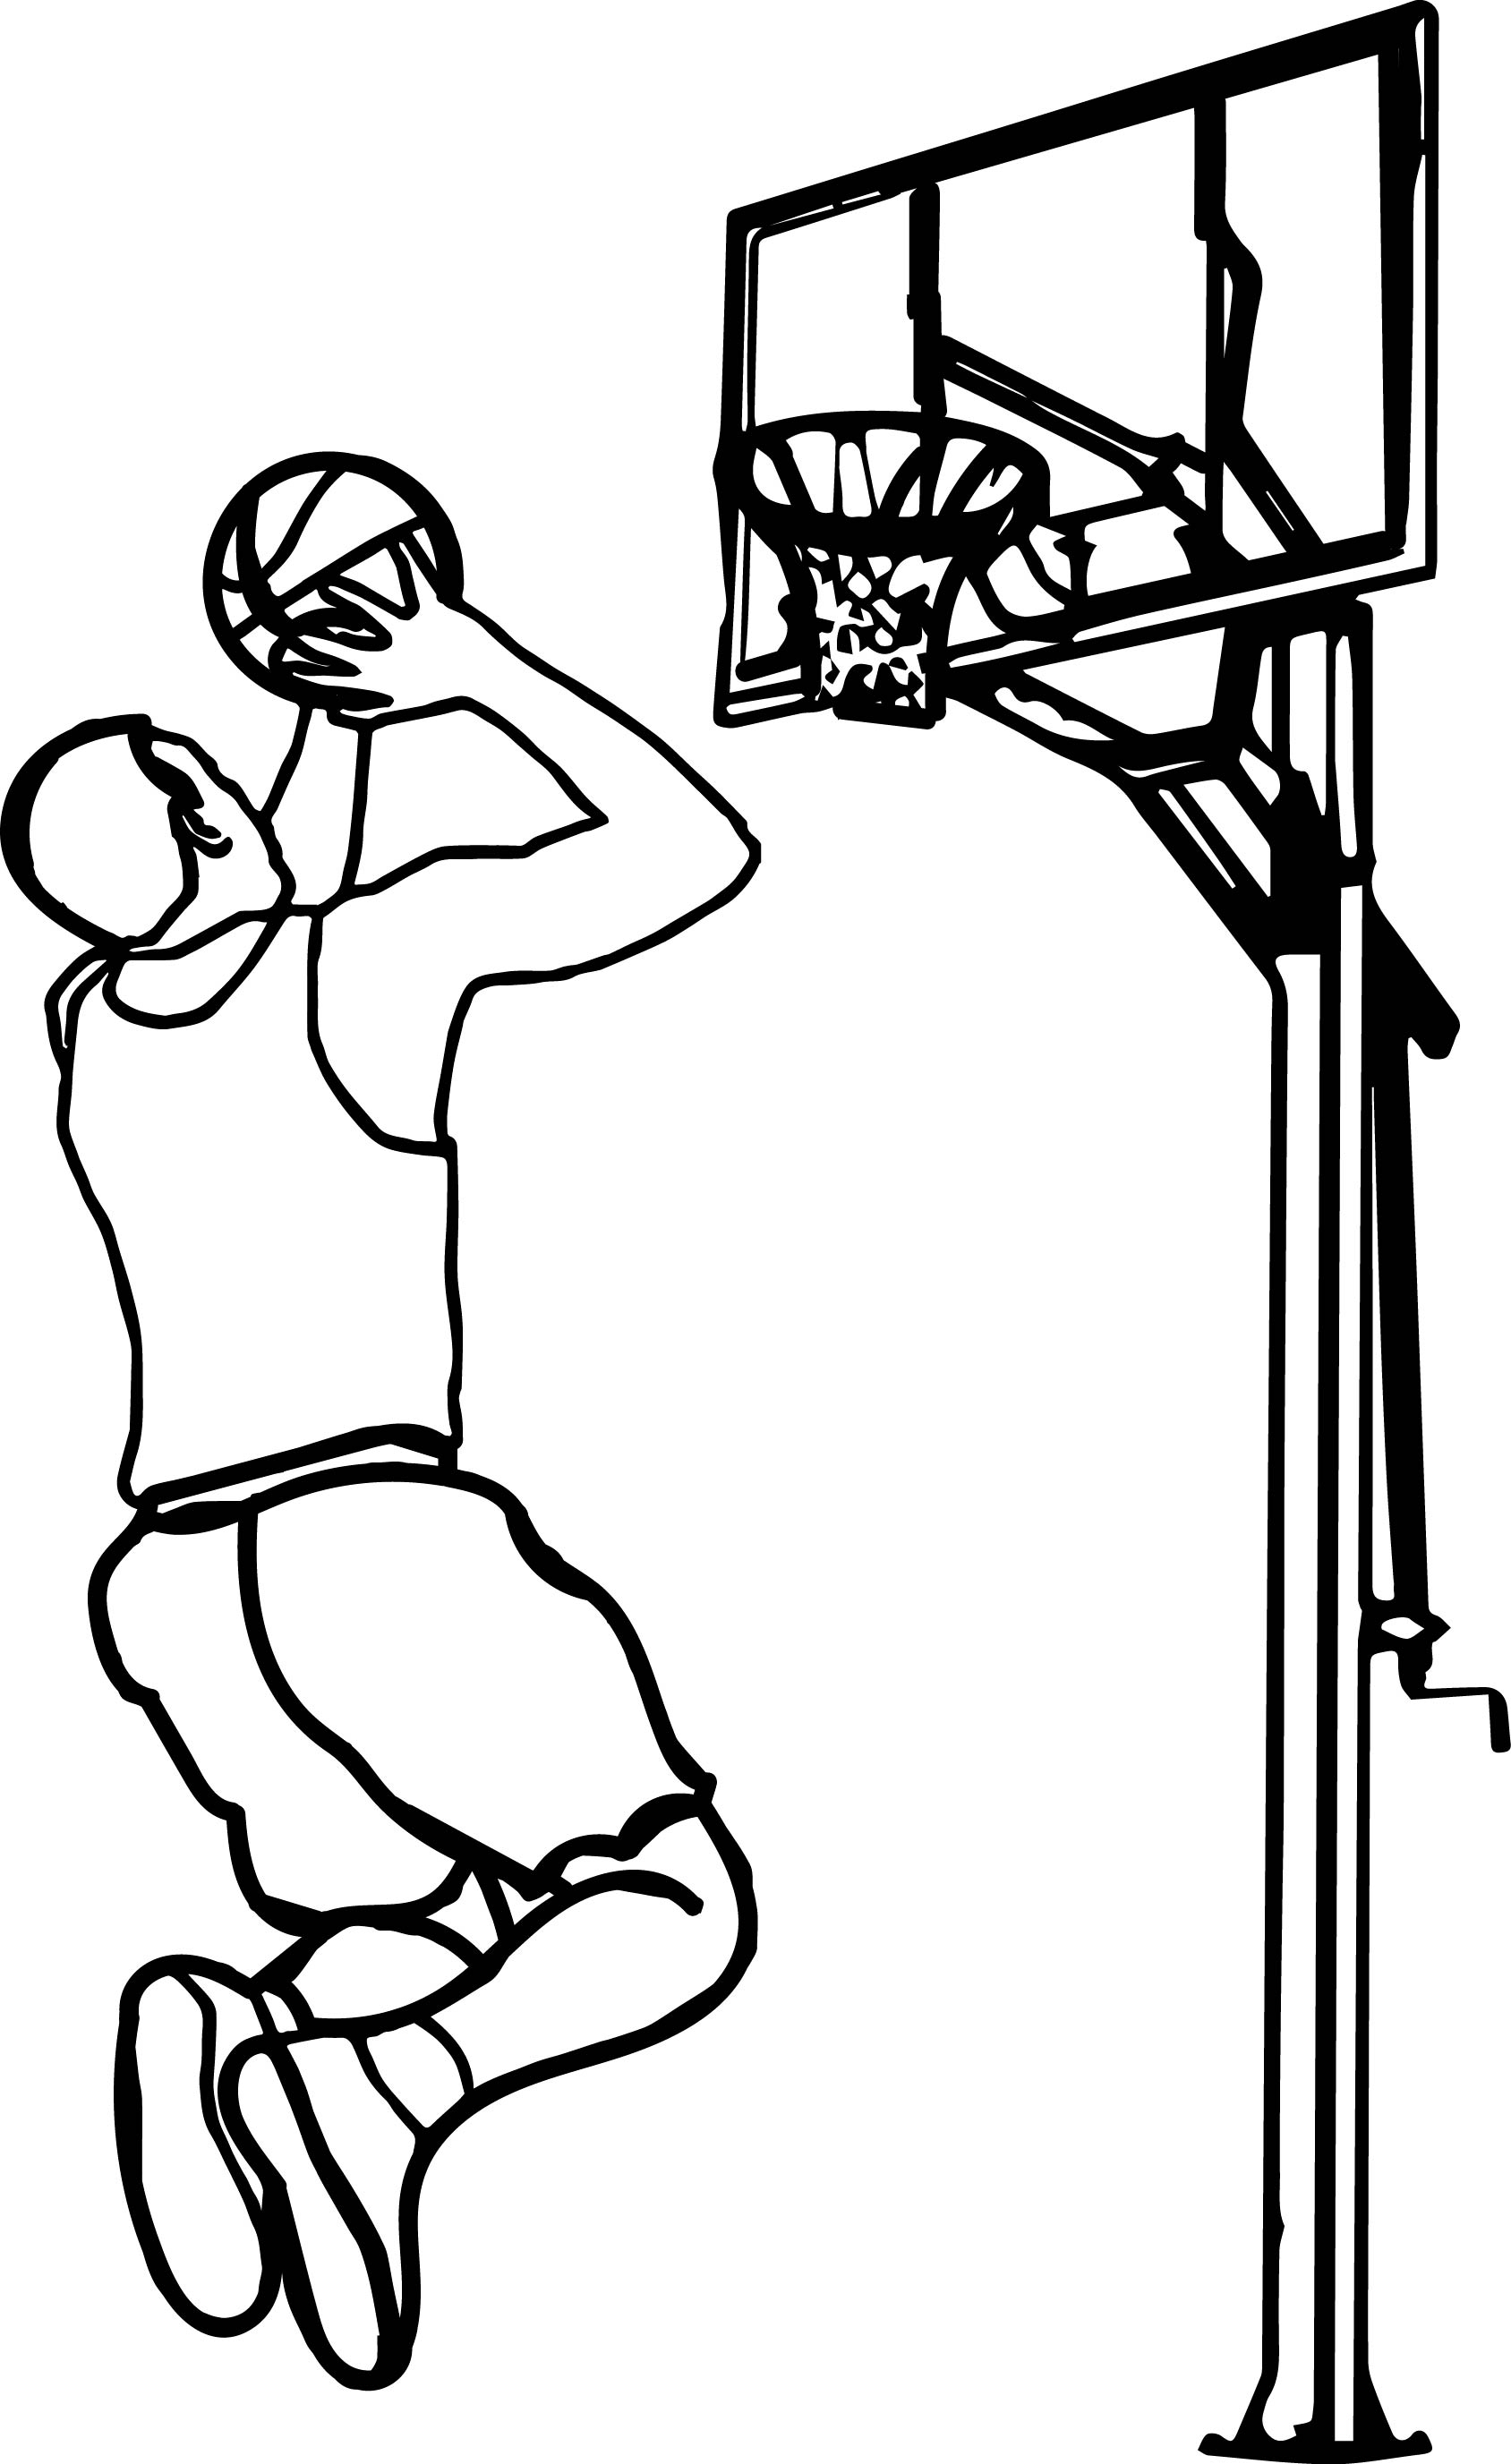 1688x2753 Enormous Basketball Hoop Coloring Page With Ball